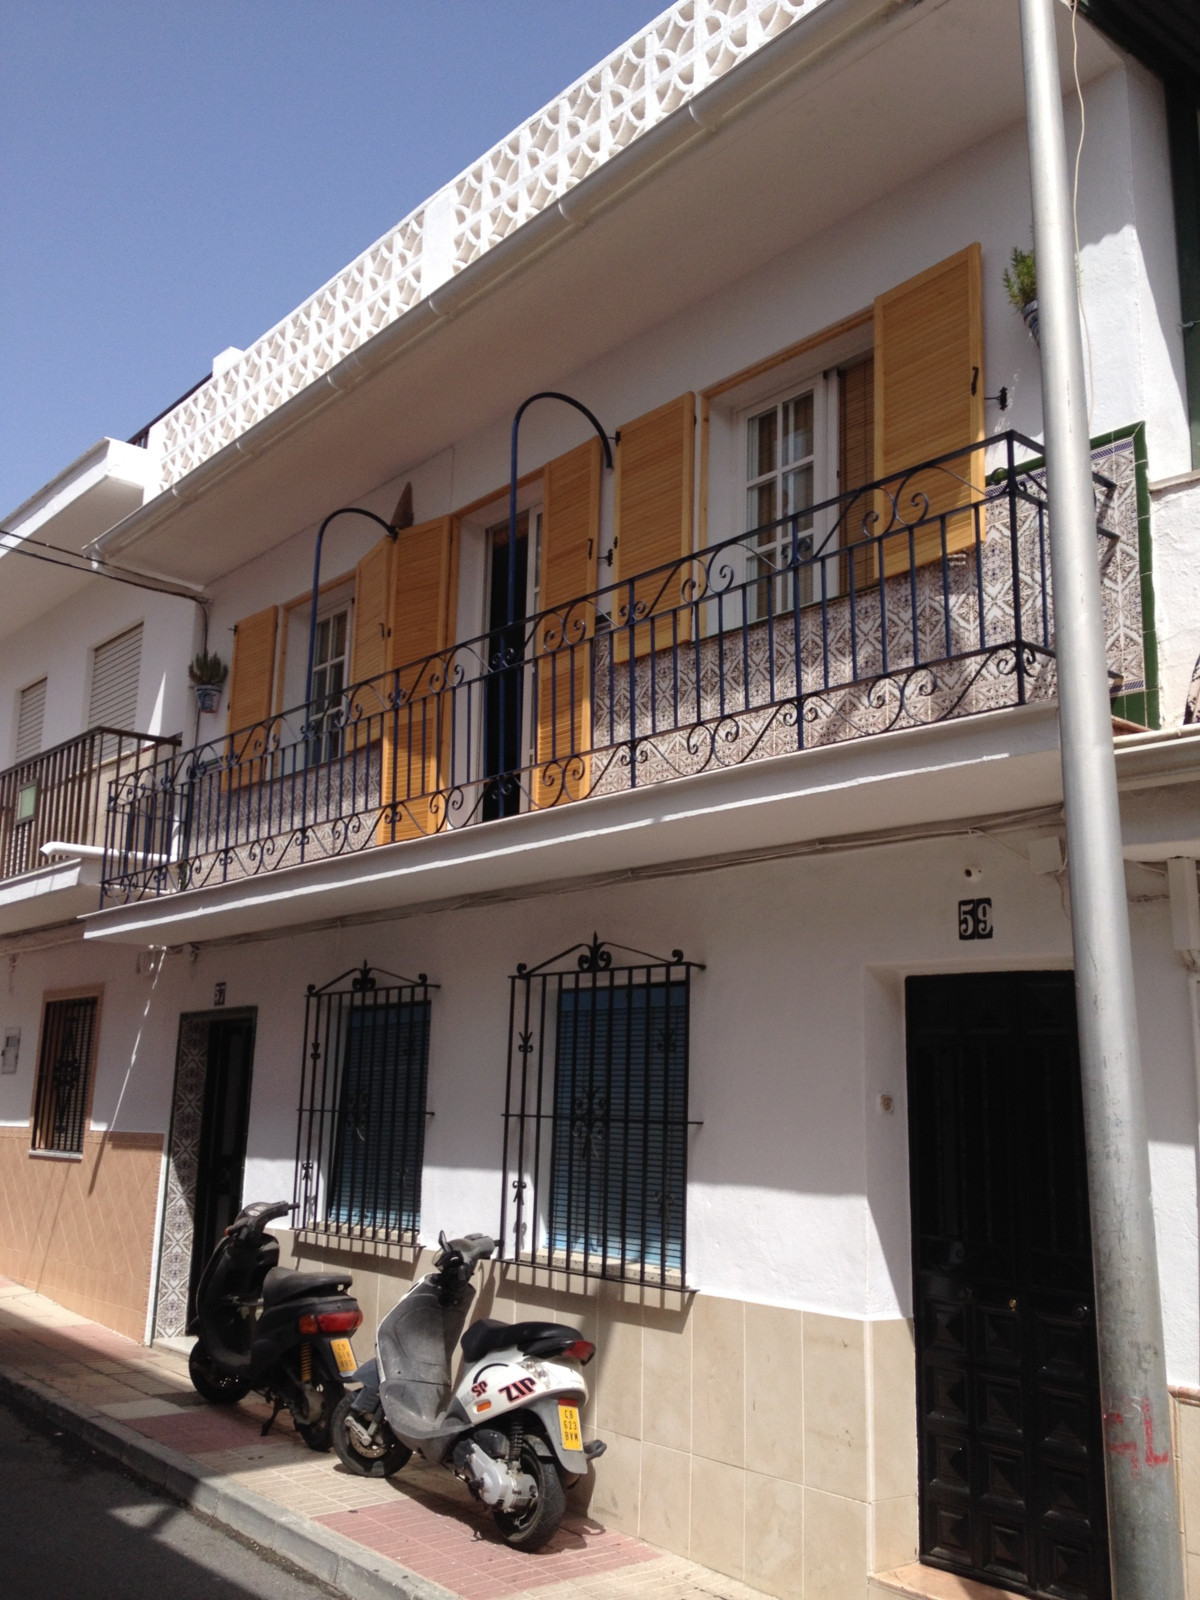 UNDER OFFER... Lovely, recently reformed apartment in San Pedro Town Centre. Walking distance to bea, Spain